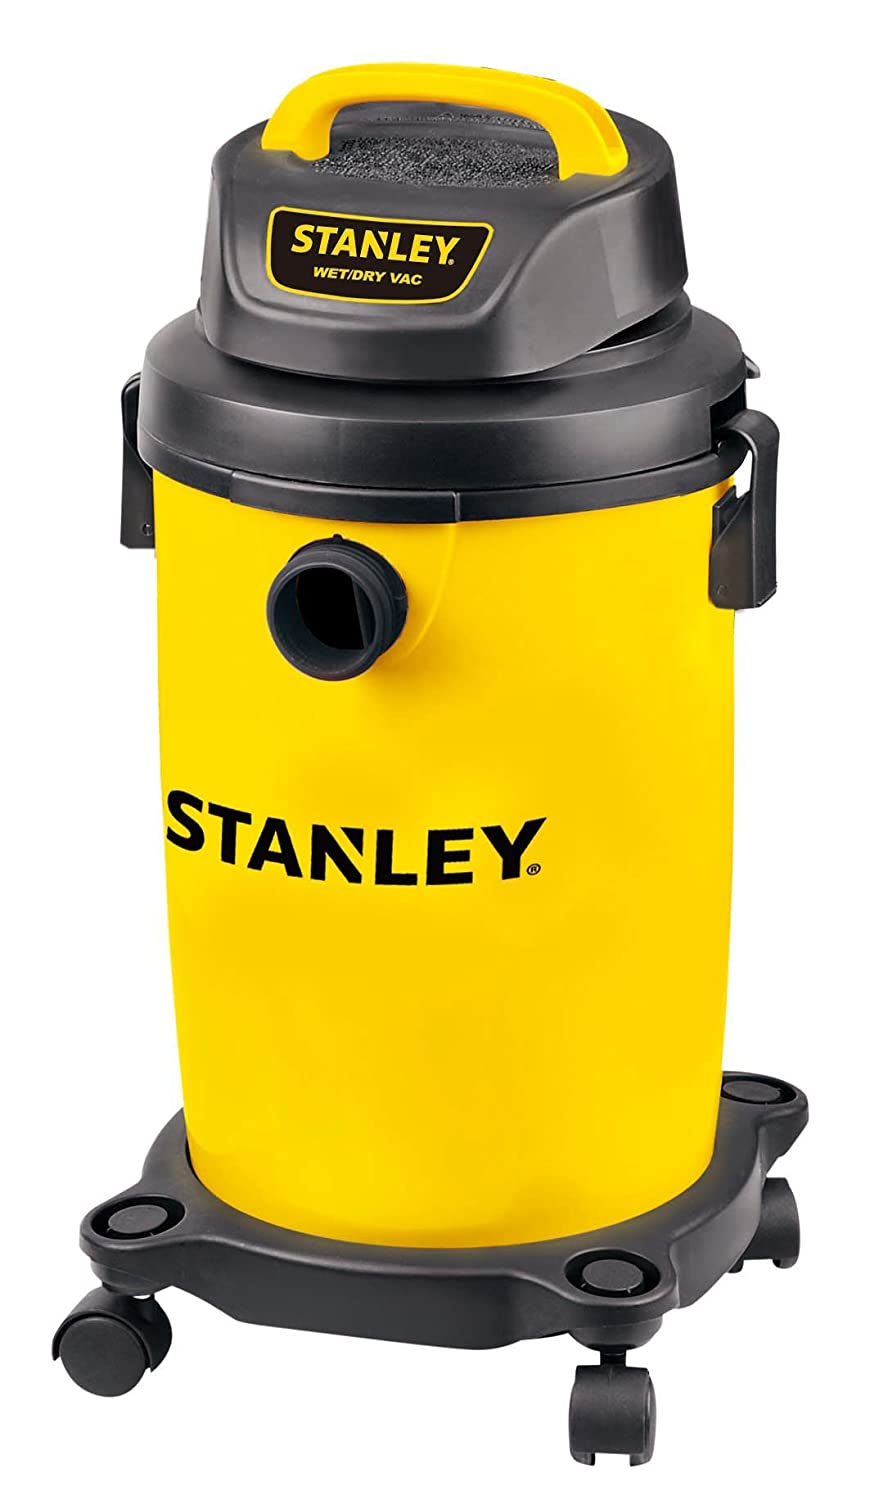 Stanley Wet/Dry Vacuum, 12 Gallon, 5.5 Horsepower SL18199P